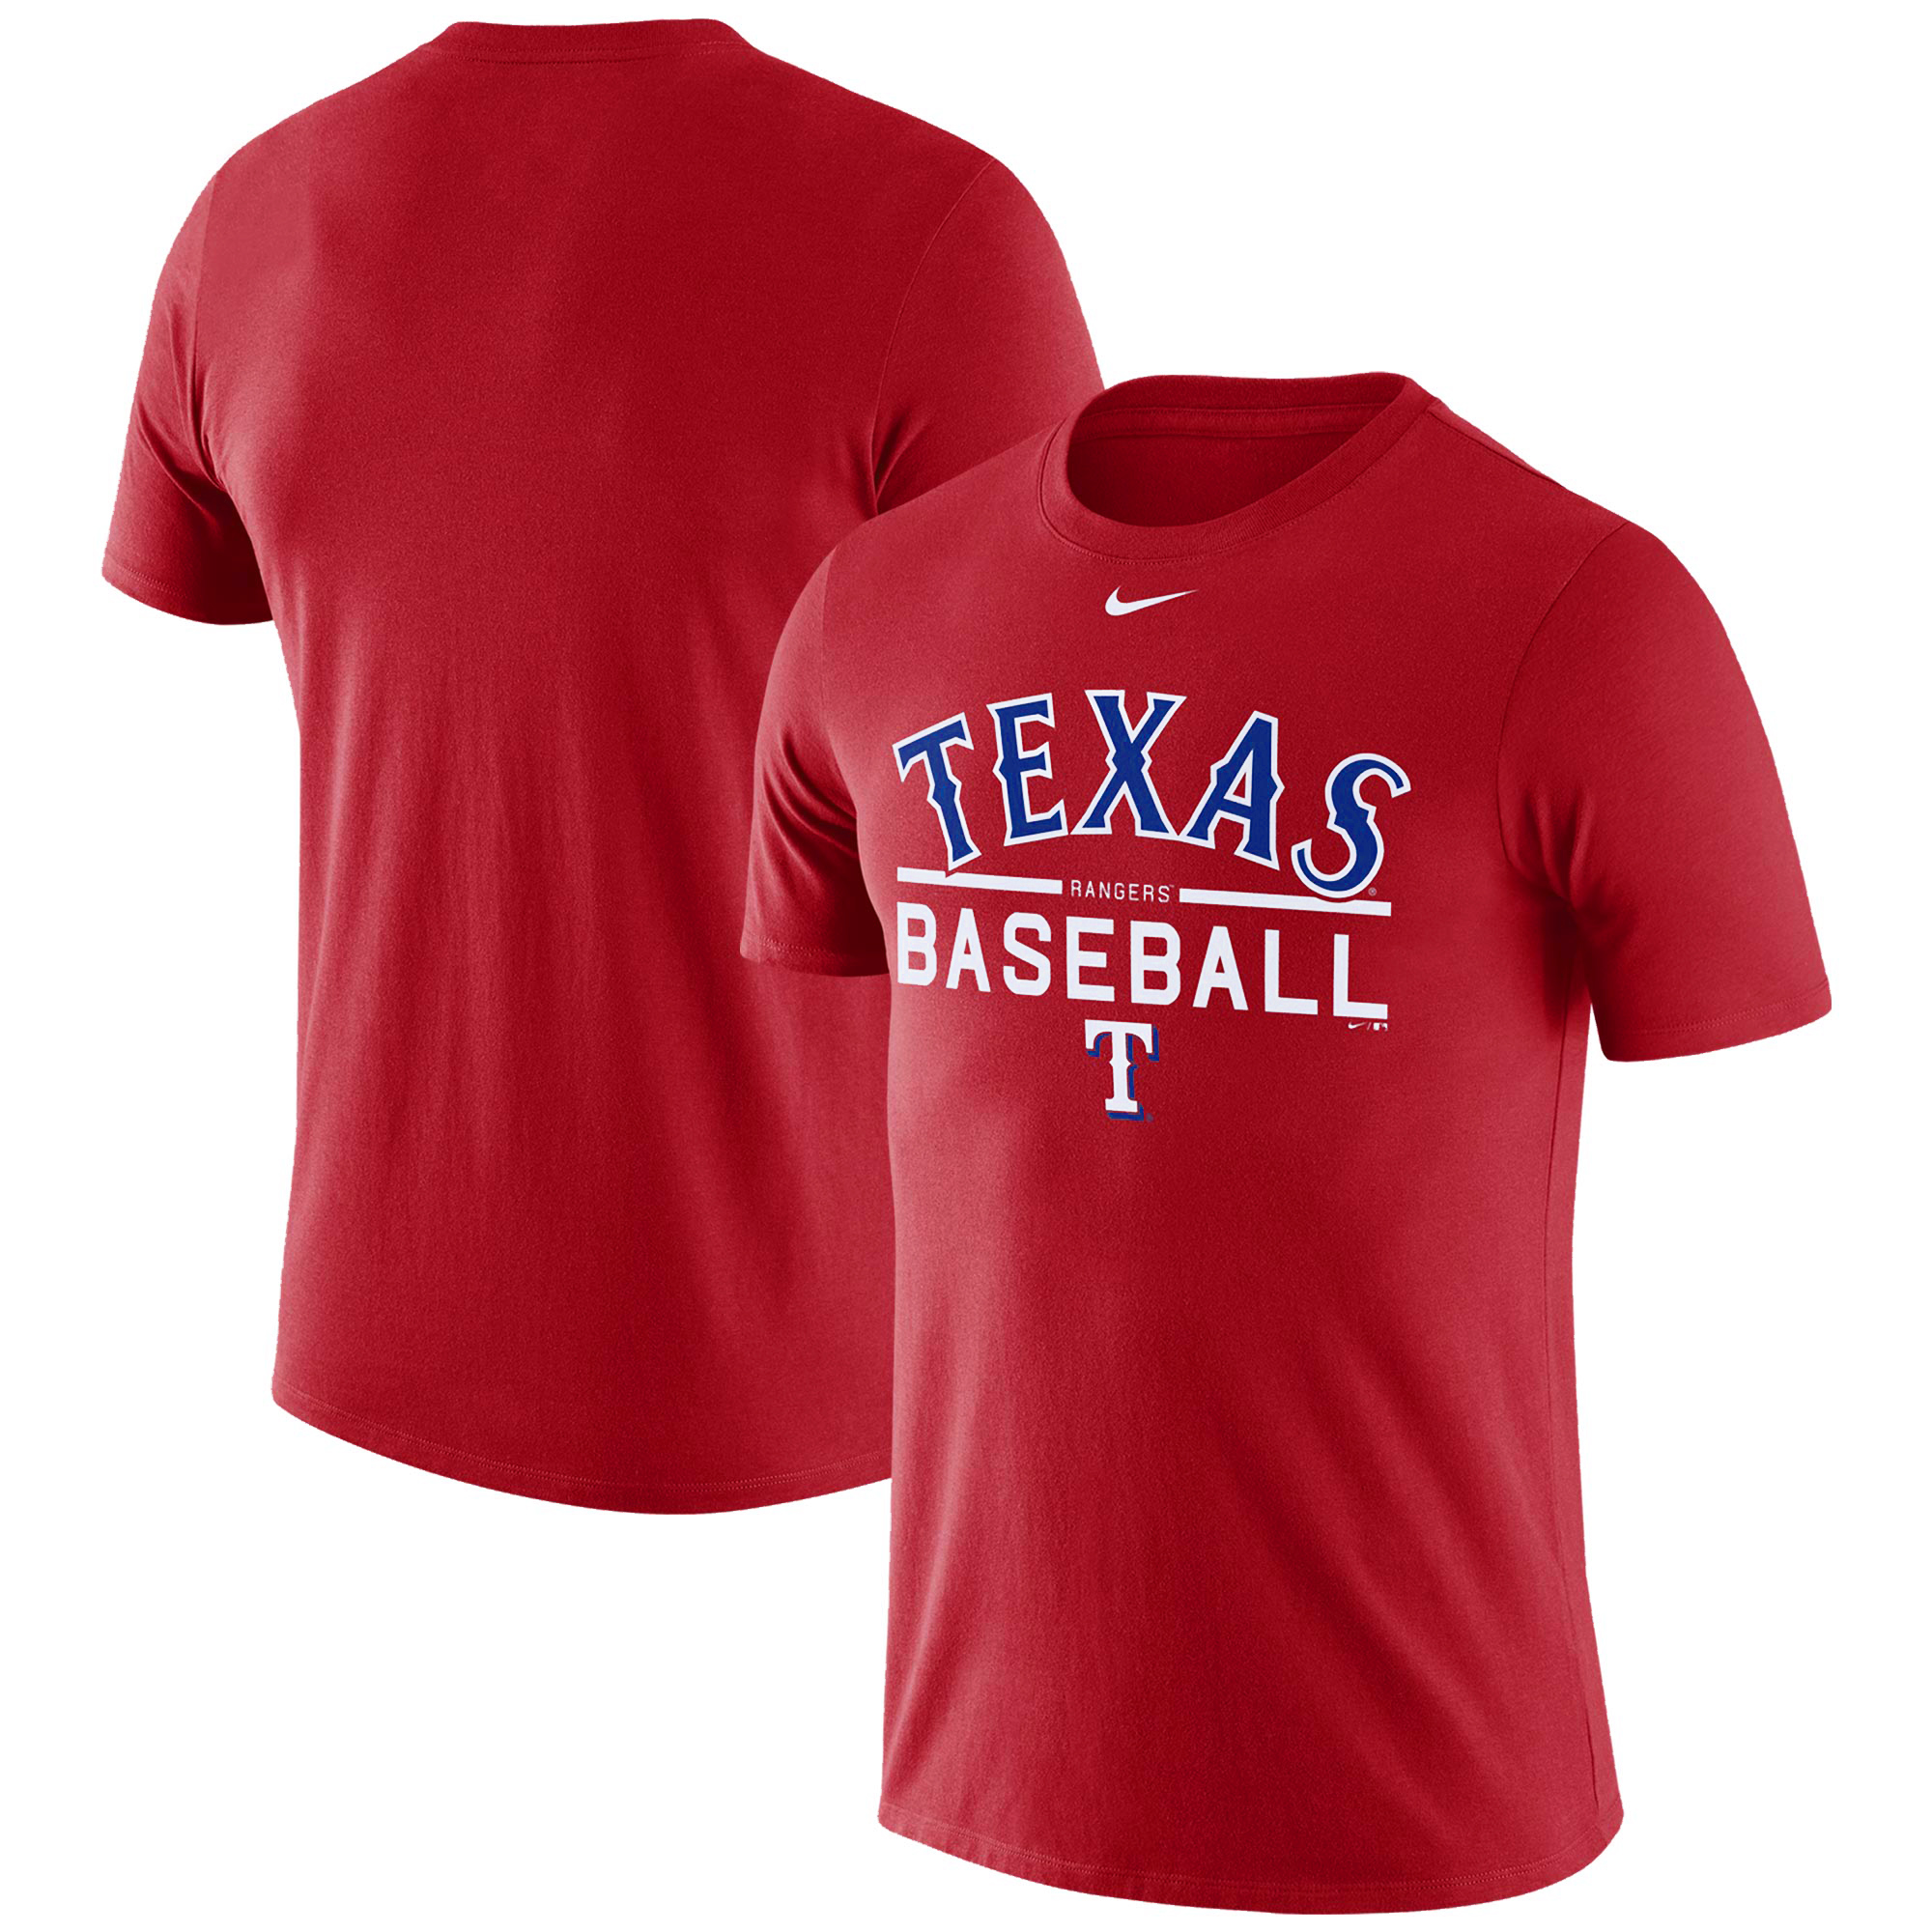 Men's Nike Red Texas Rangers Practice T-Shirt